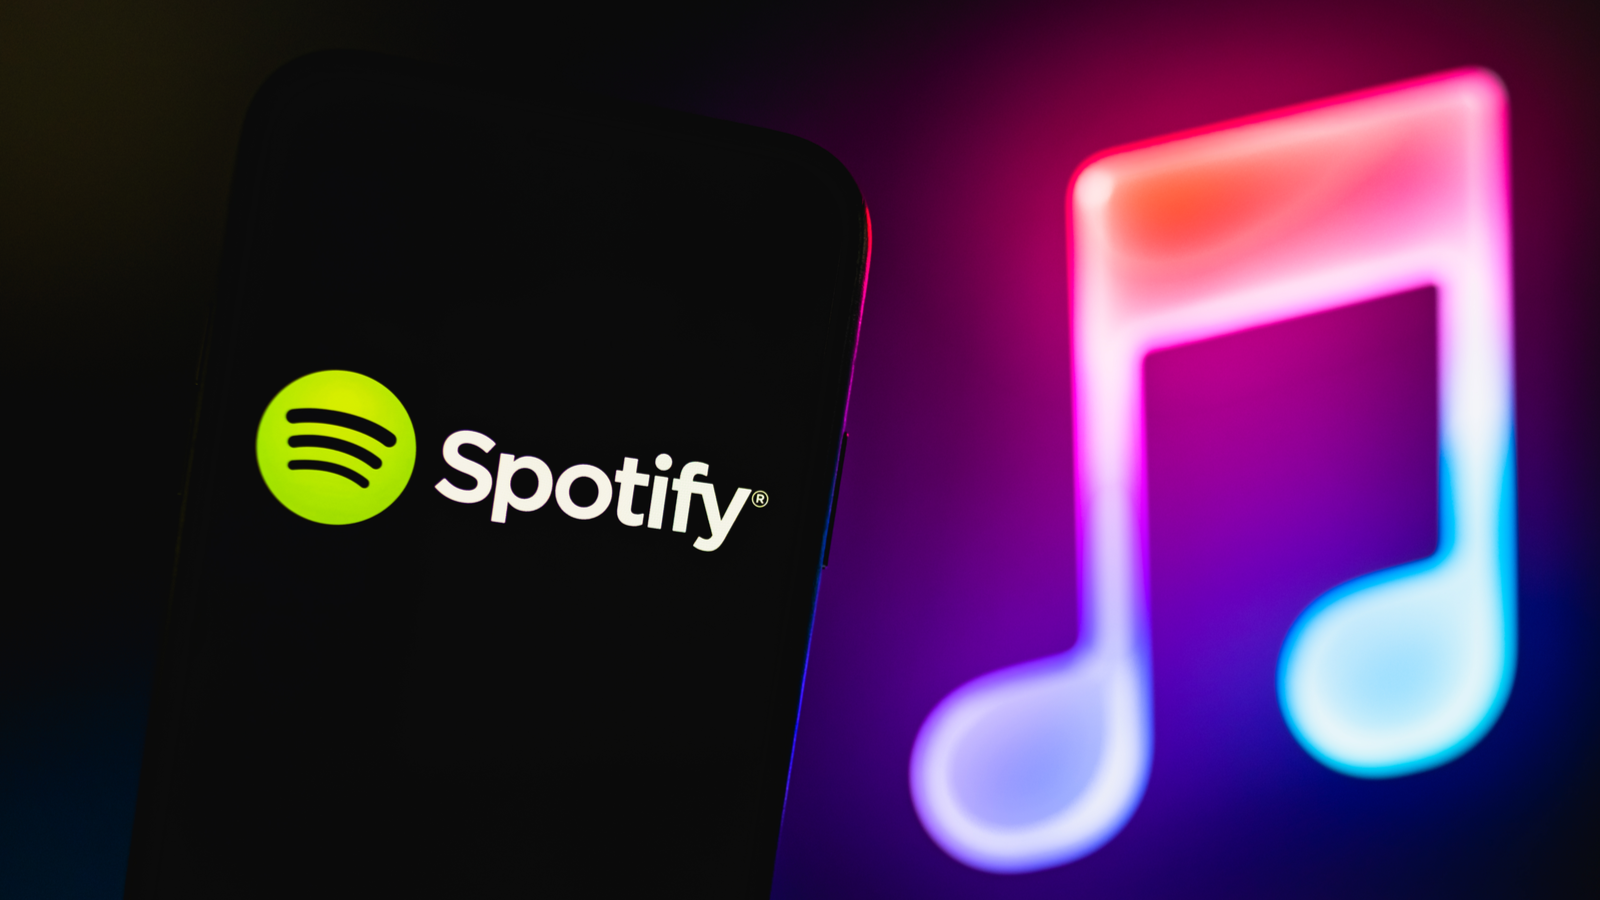 Spotify logo in front of neon screen with two musical notes